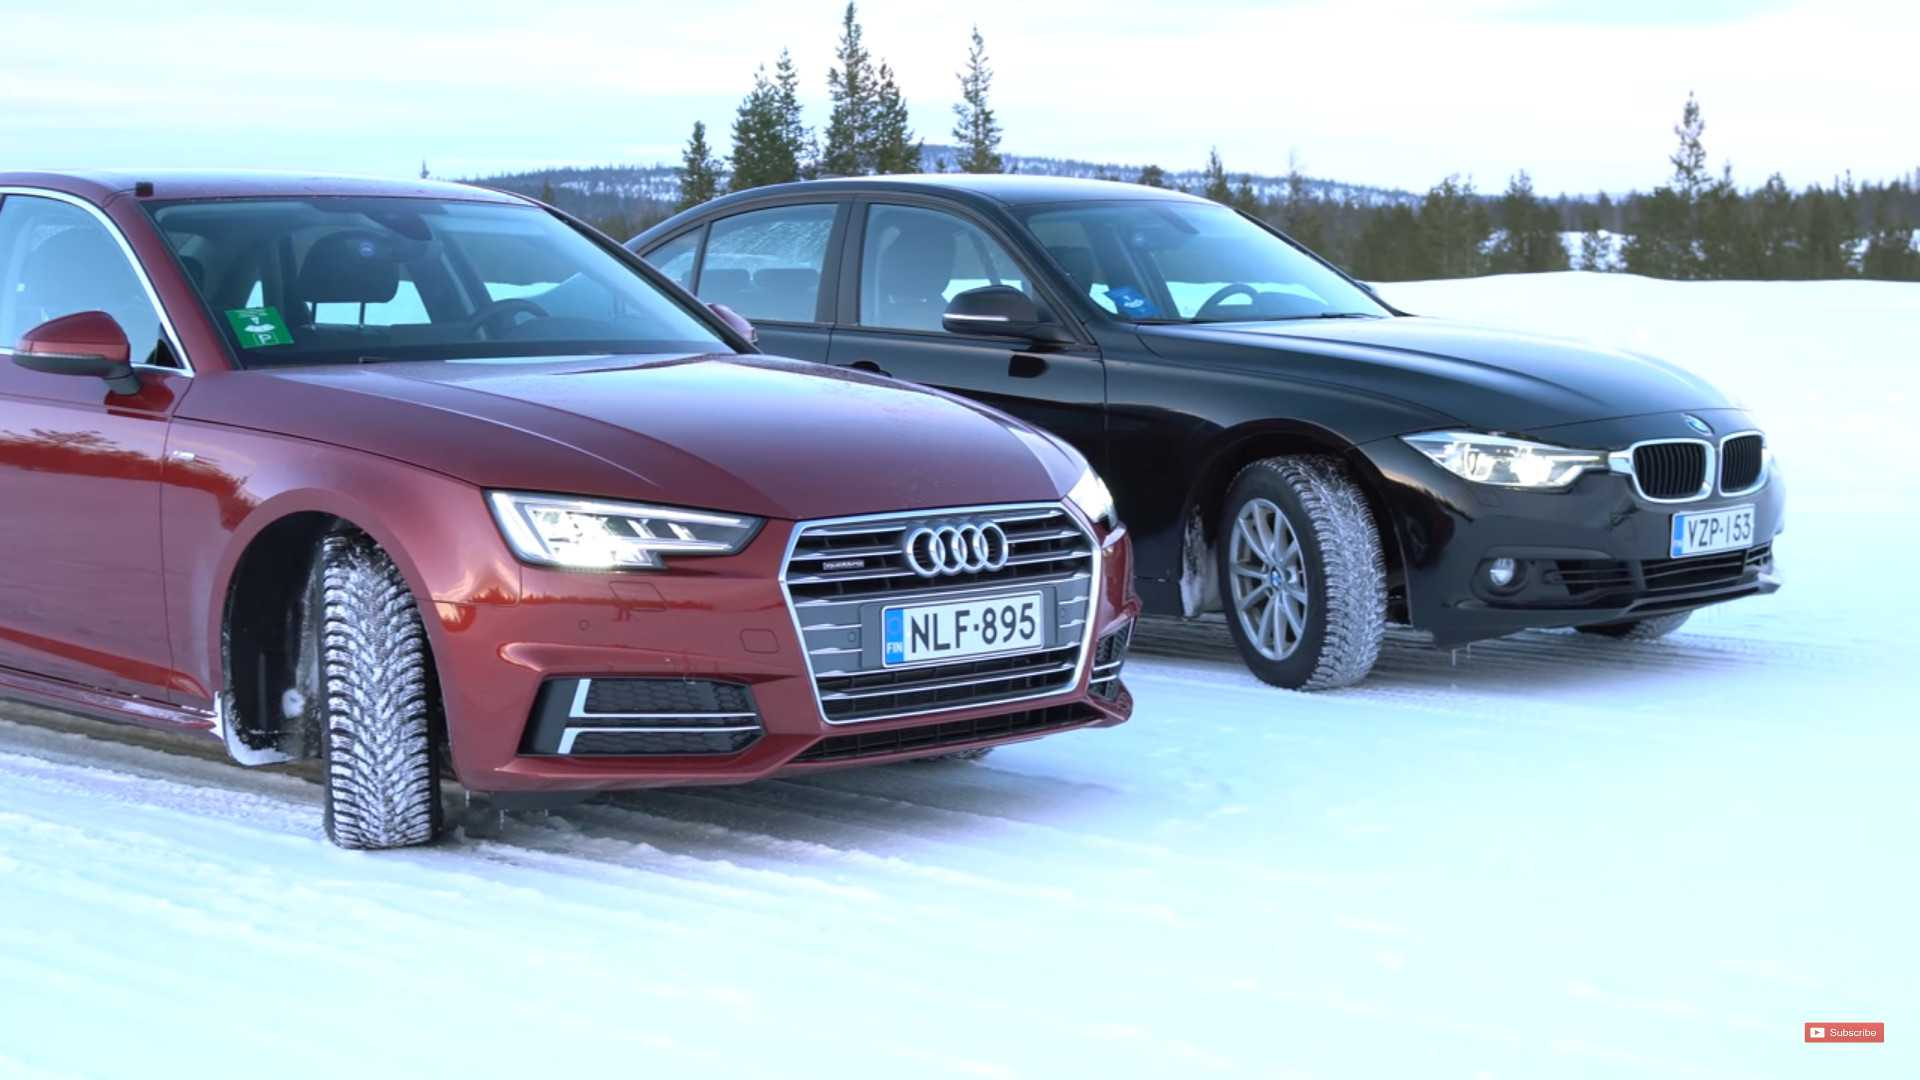 Winter's Coming: Audi Quattro Meets BMW xDrive In Snow Test